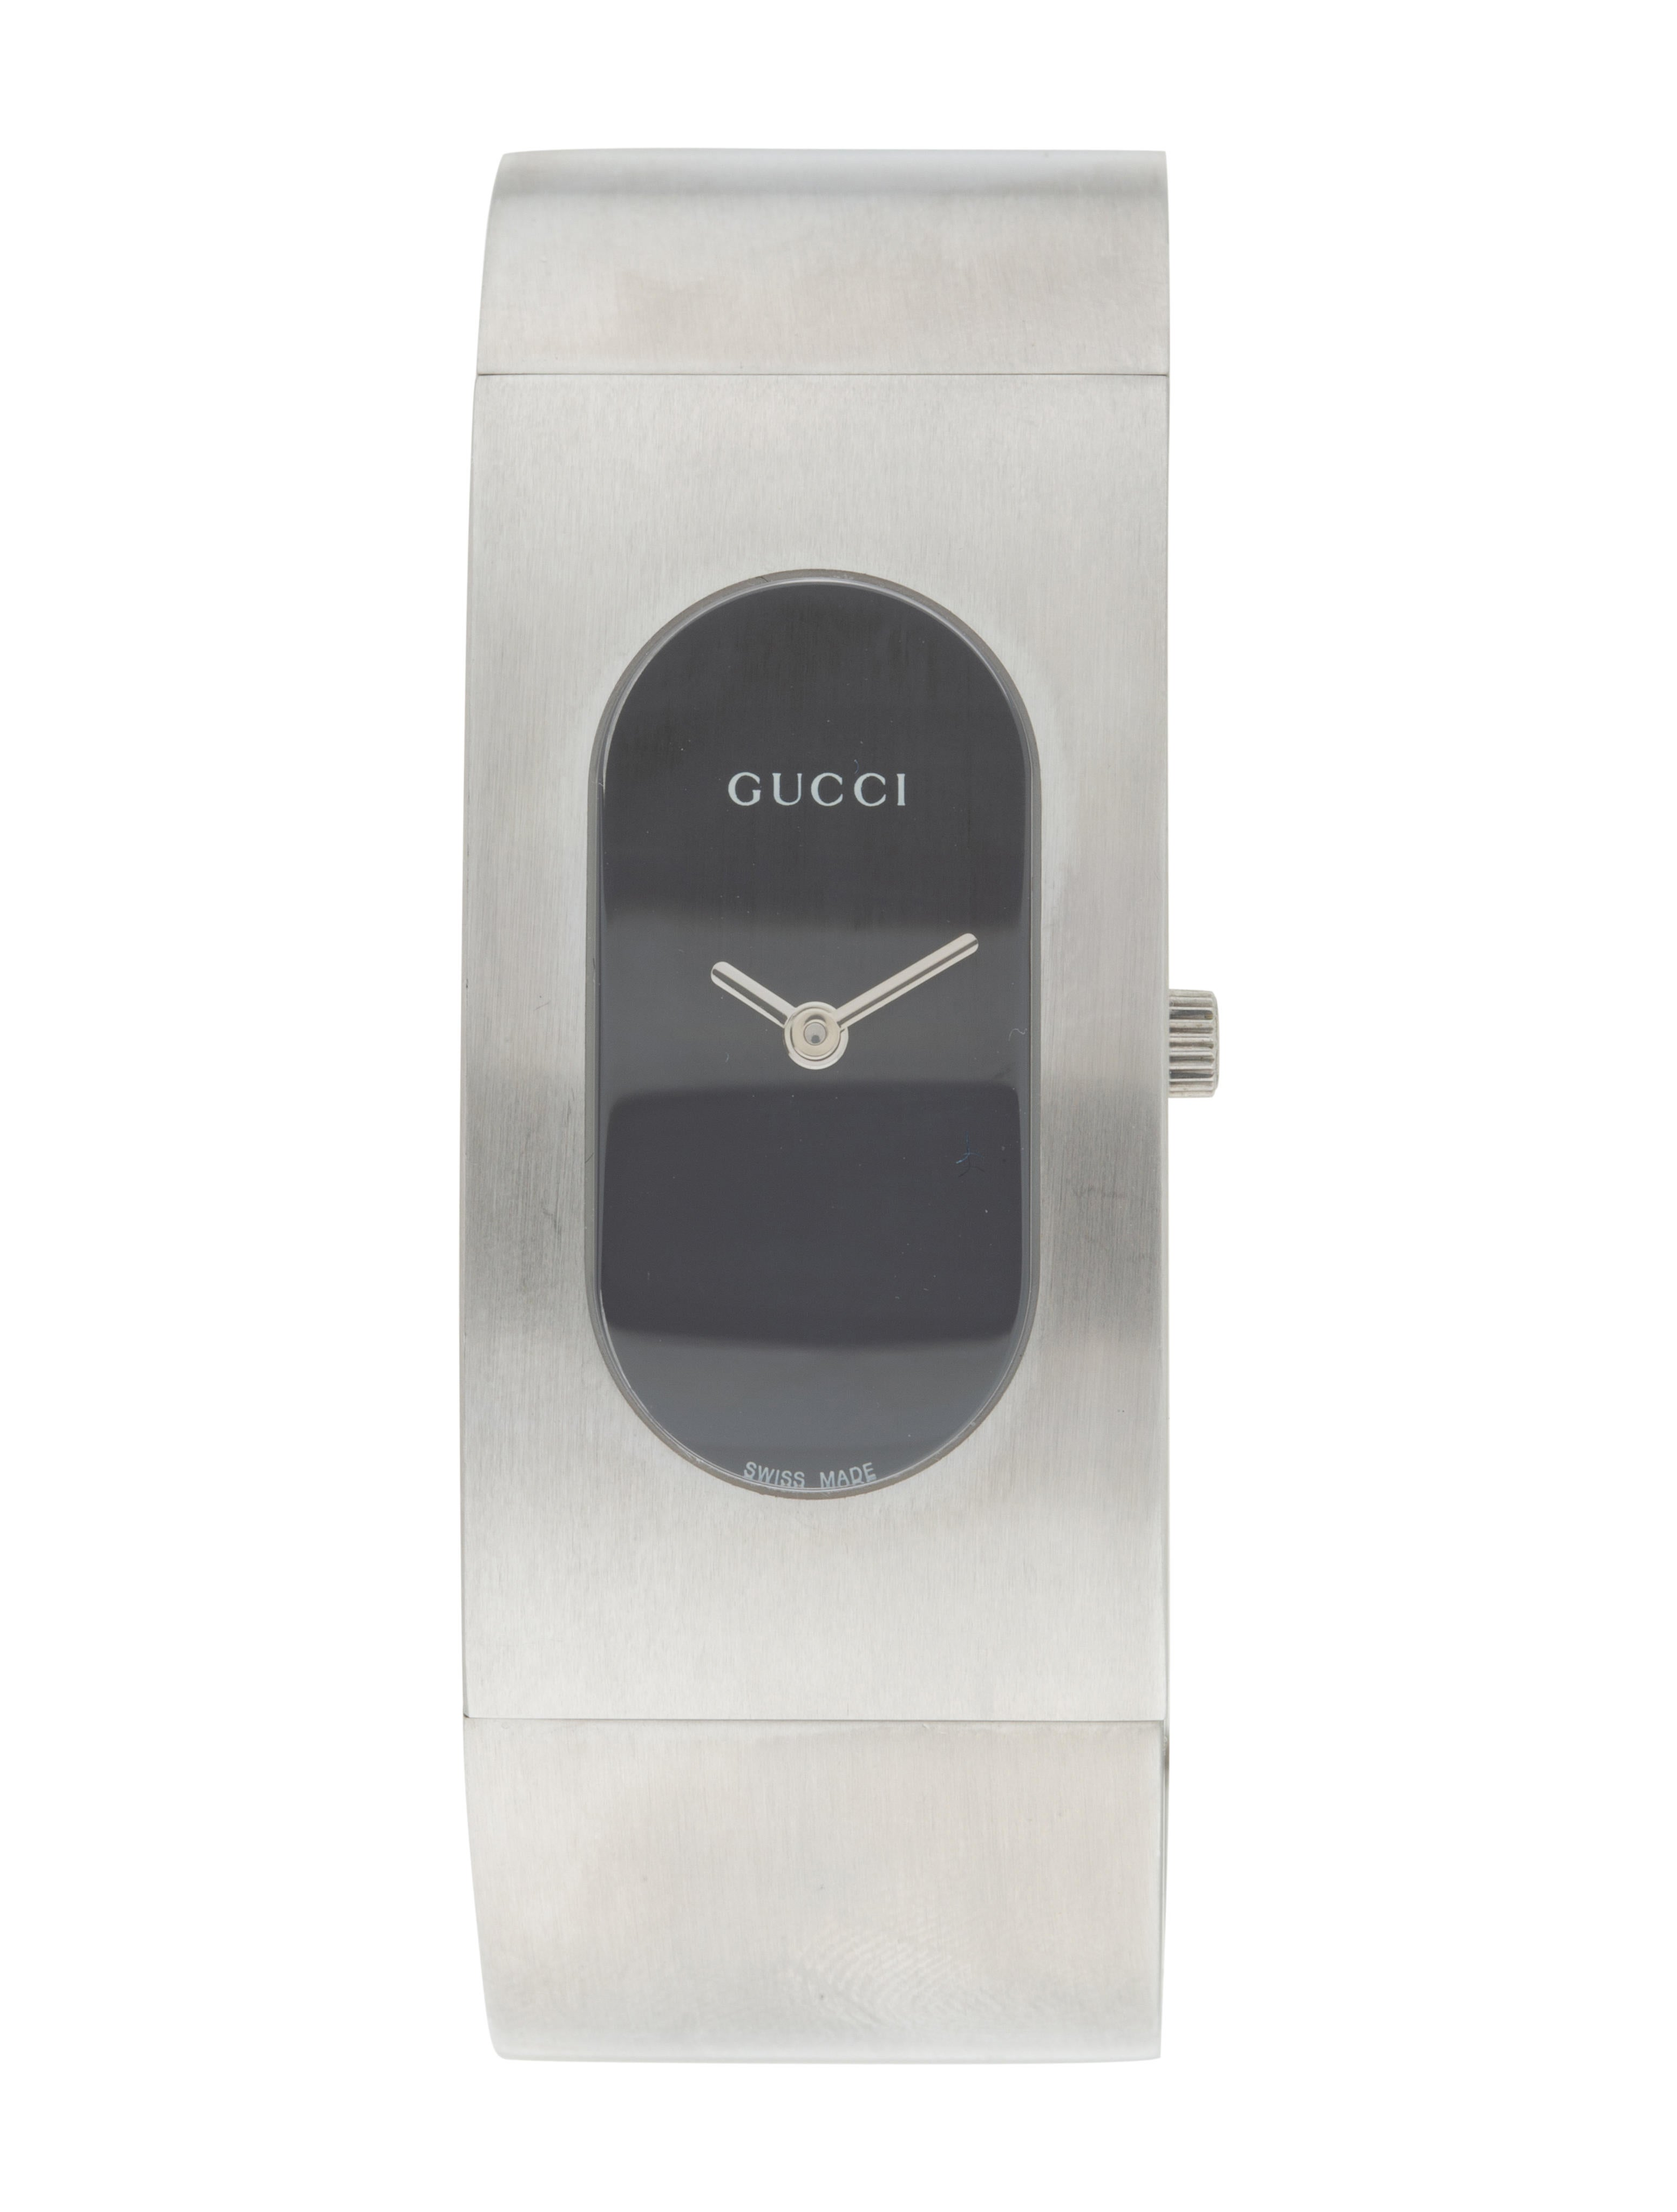 5a07b6e26e6 Gucci 2400 Series Watch - Bracelet - GUC276277